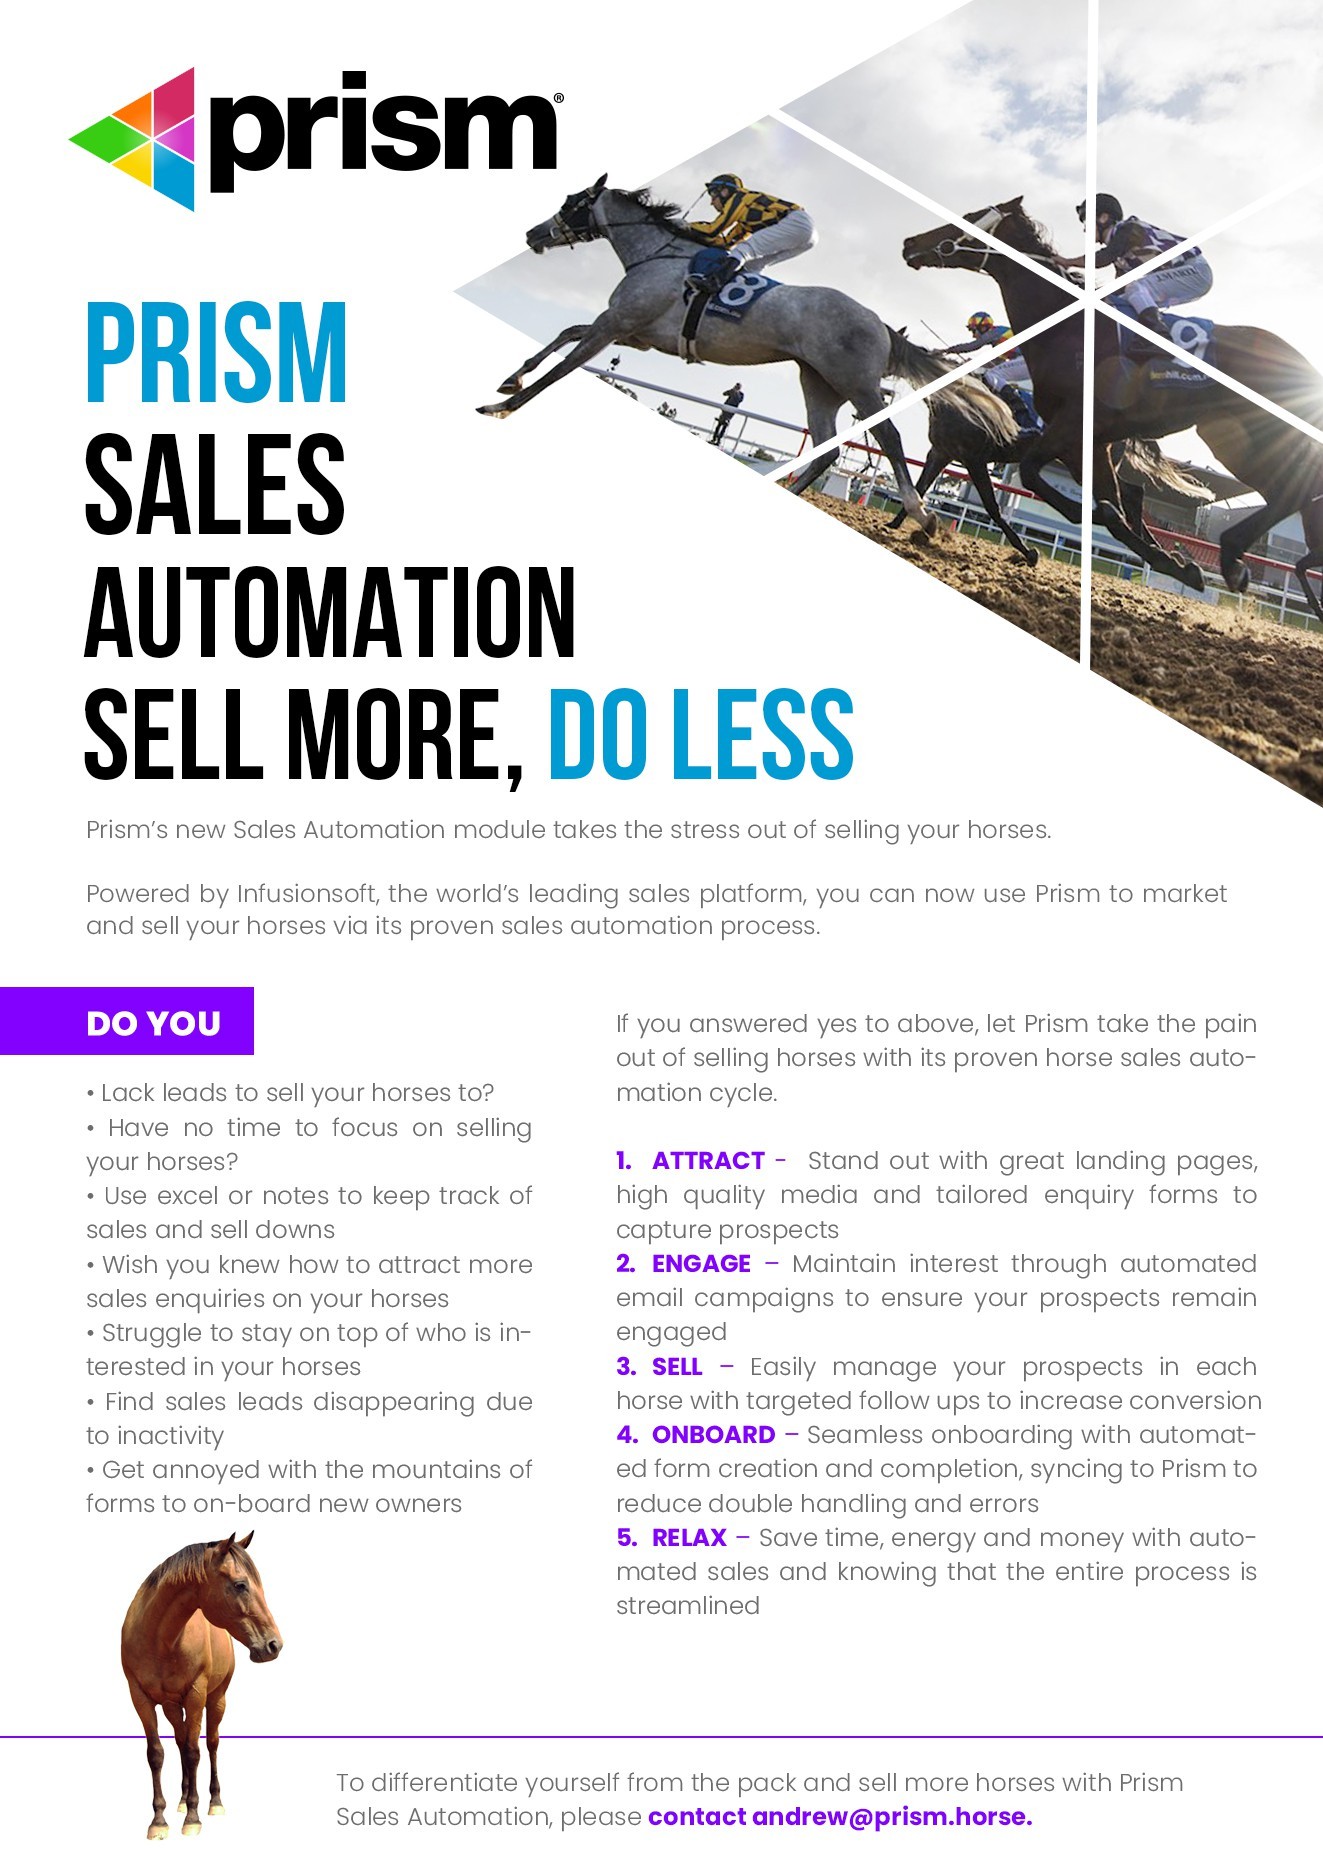 Design an eye-catching single page brochure for horse racing technology company